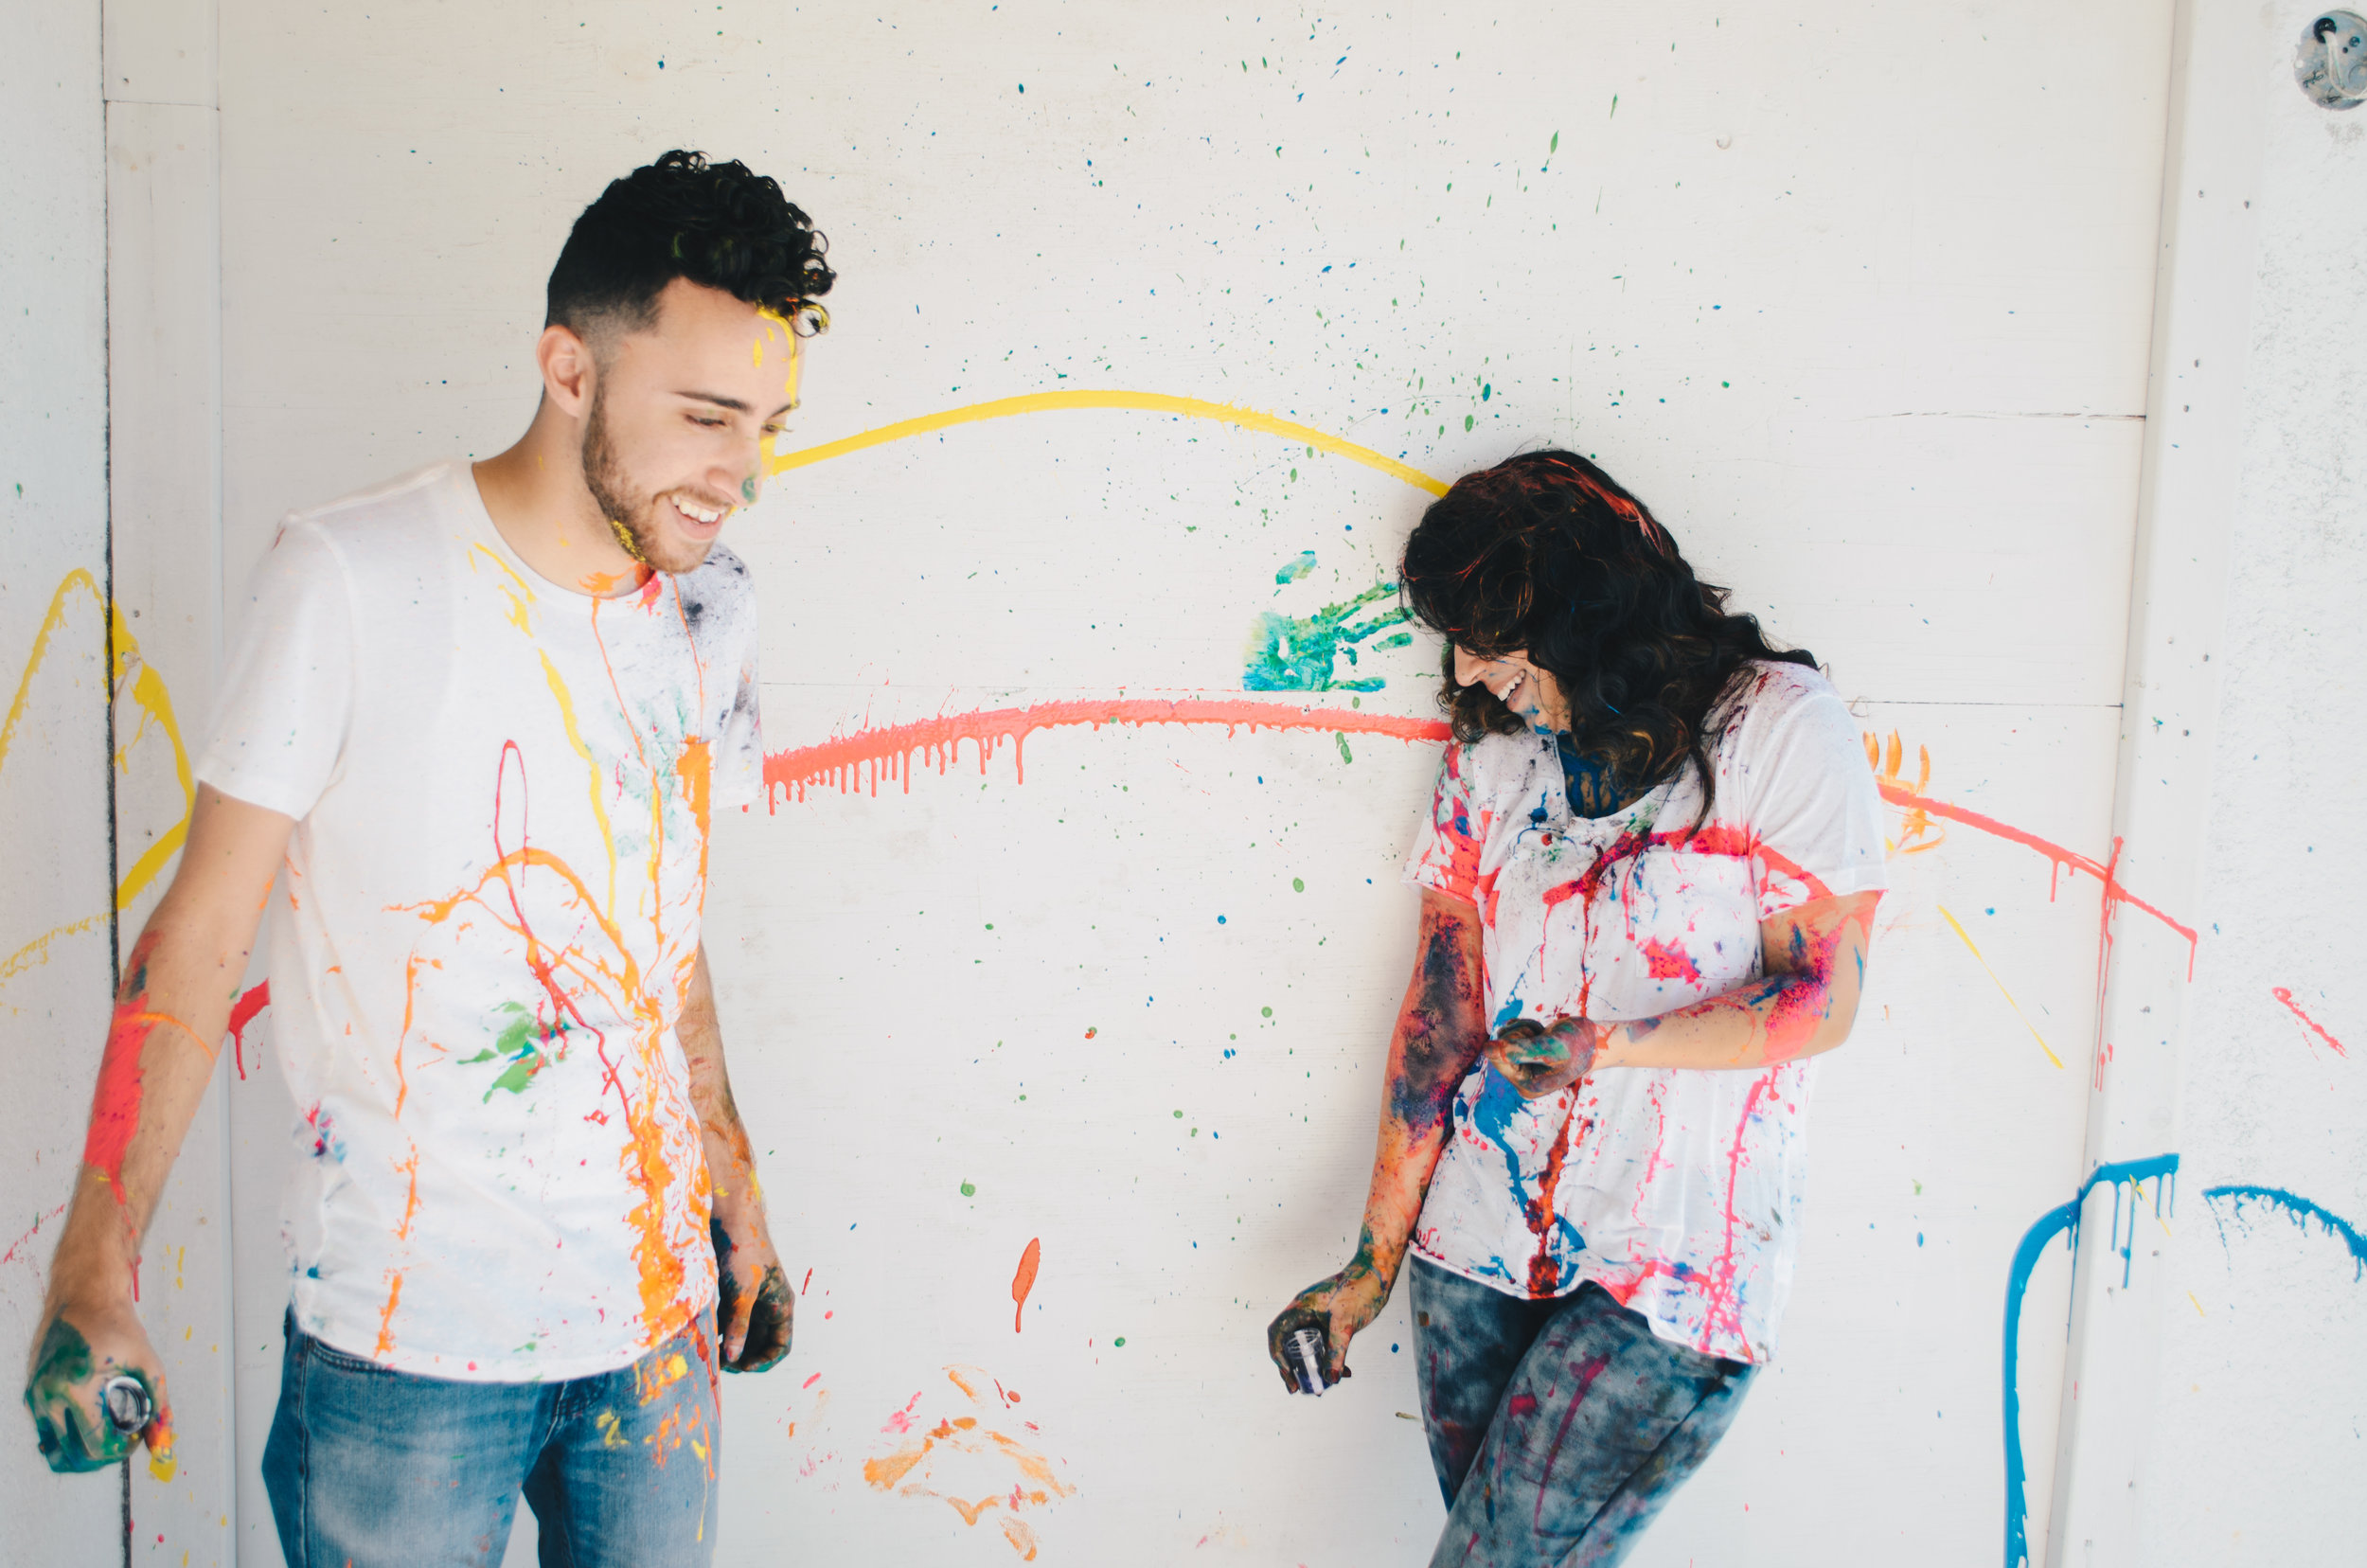 central-fl-christian-paint-war-session-17.jpg